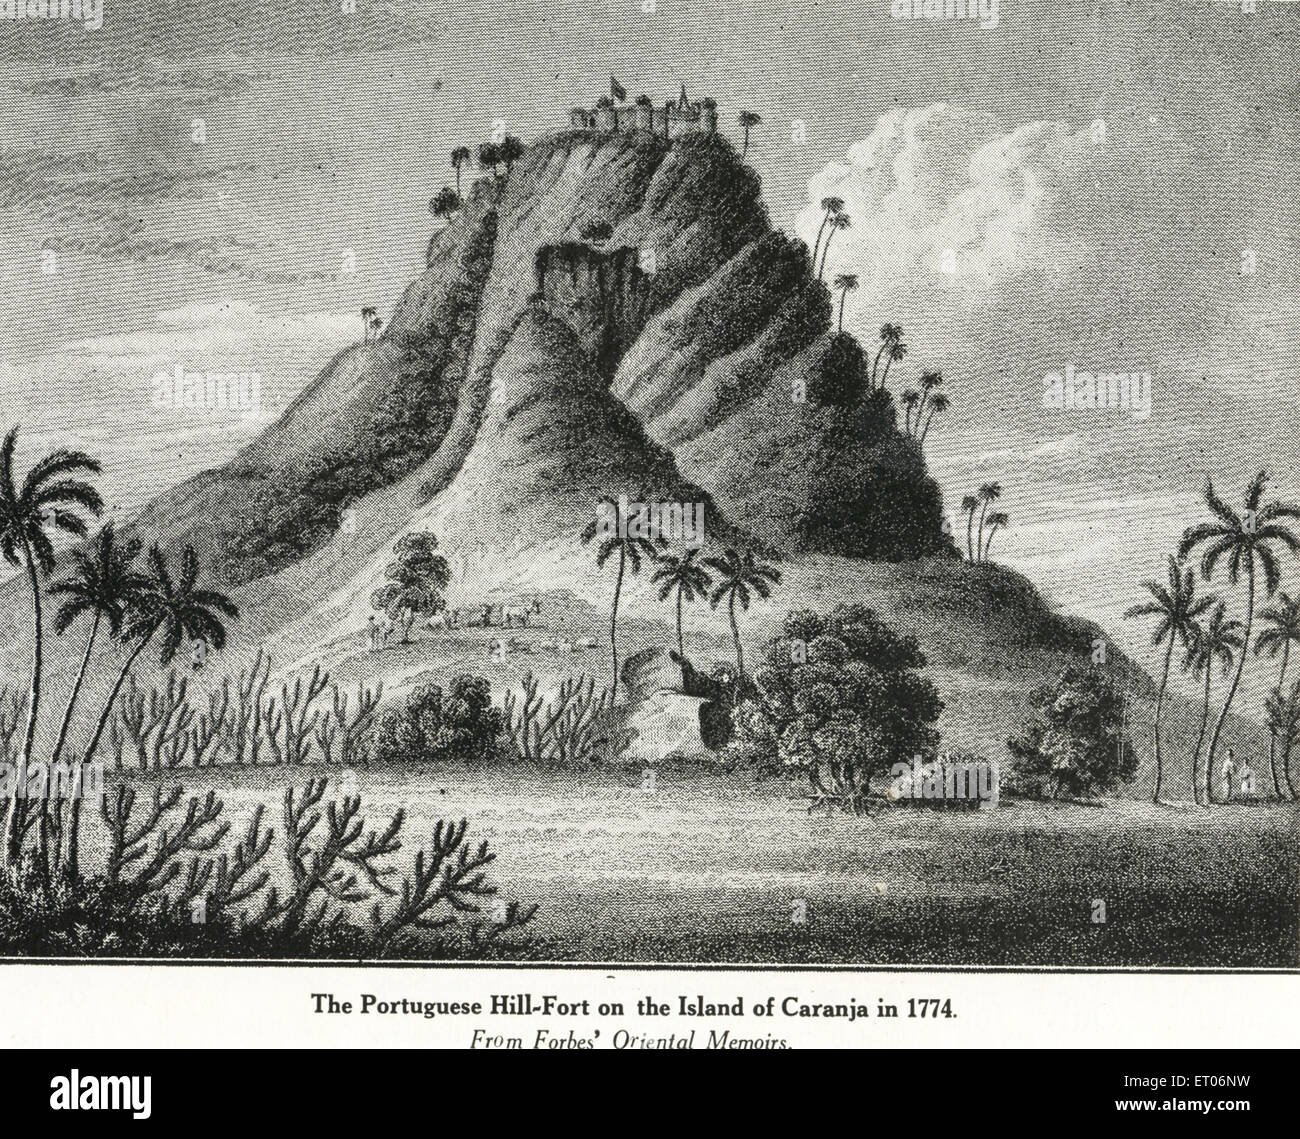 Catholic community Portuguese Hill Fort on Island of Caranja in 1774 - Stock Image